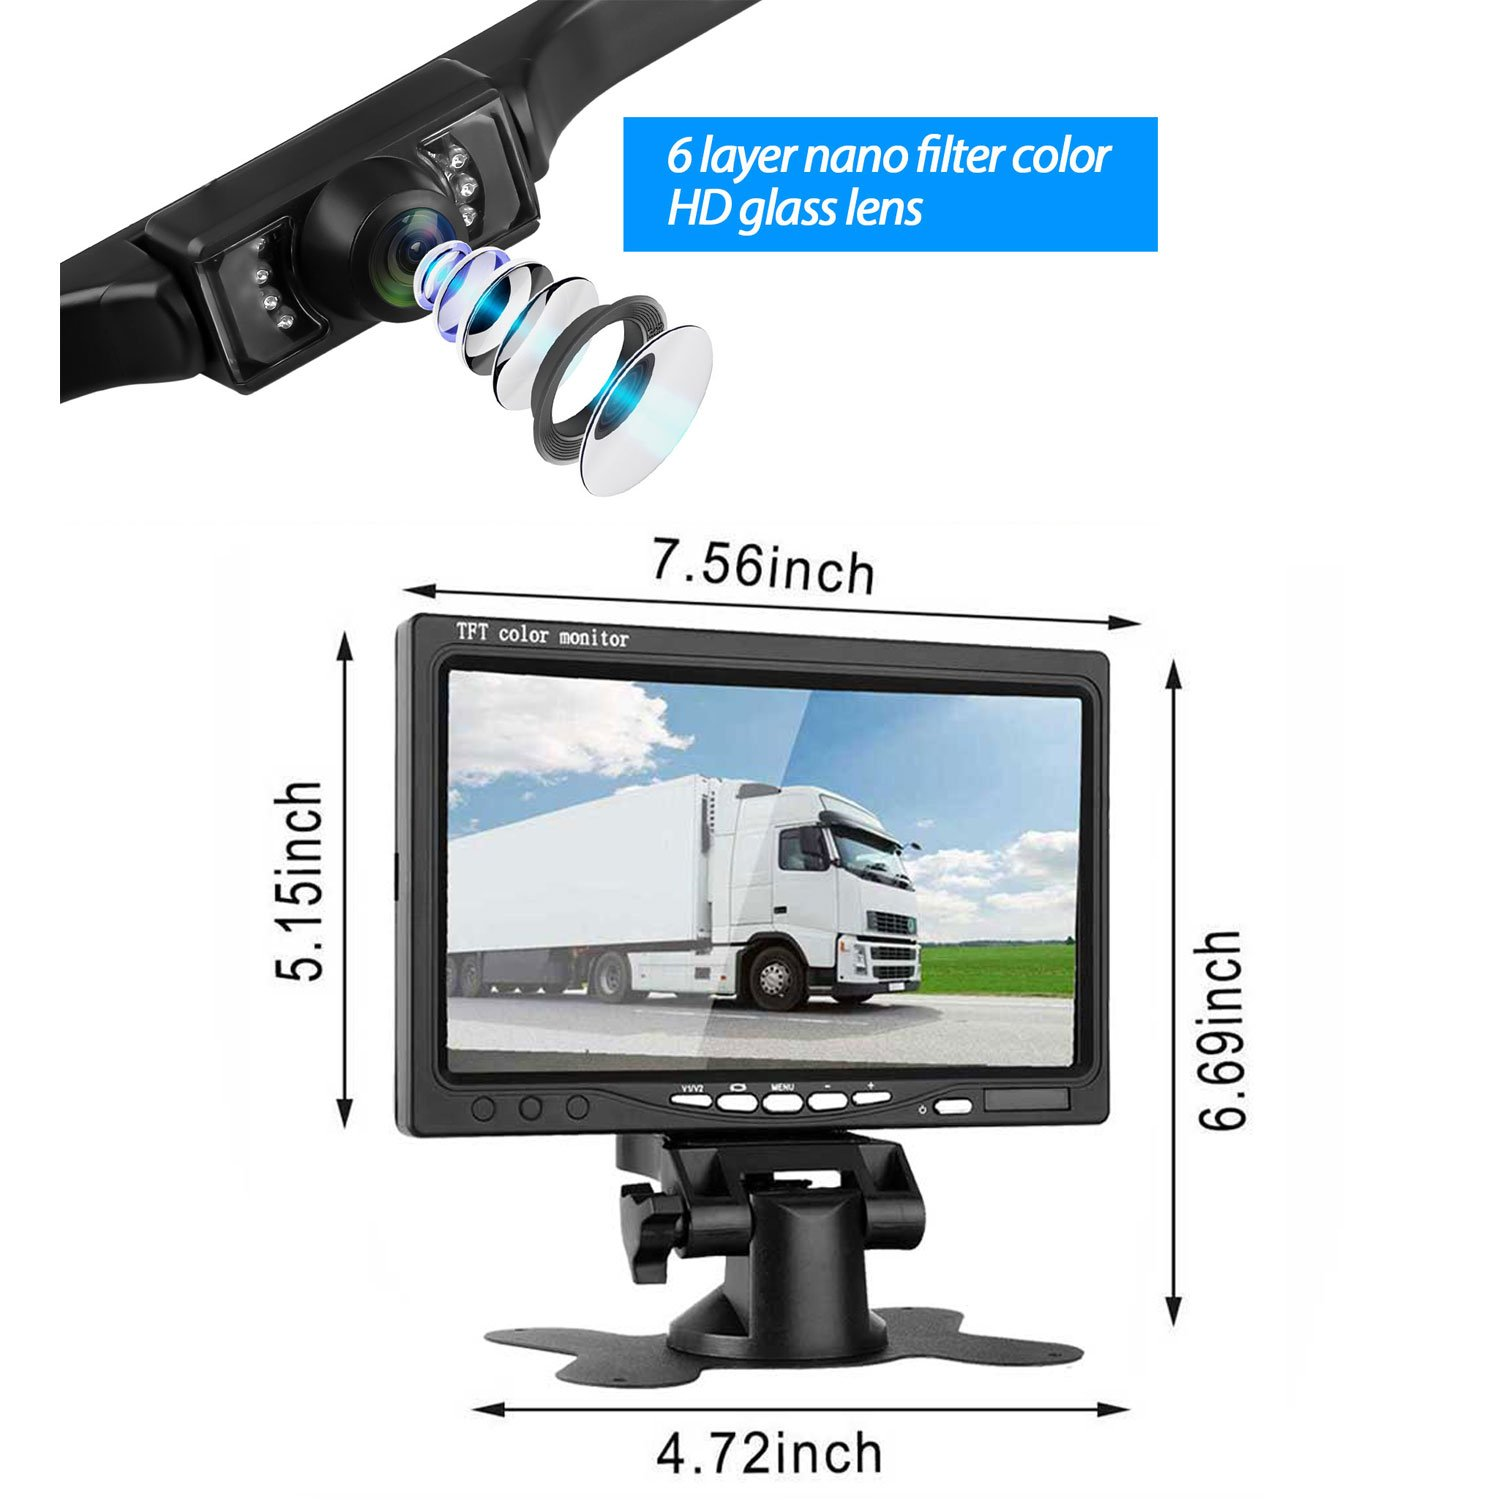 Leekooluu Backup Camera And 7 Monitor Kit For Car Plcm7200 Wiring Diagram Truck Van Pickup Camper Wire Single Power Whole Rear View Display System With